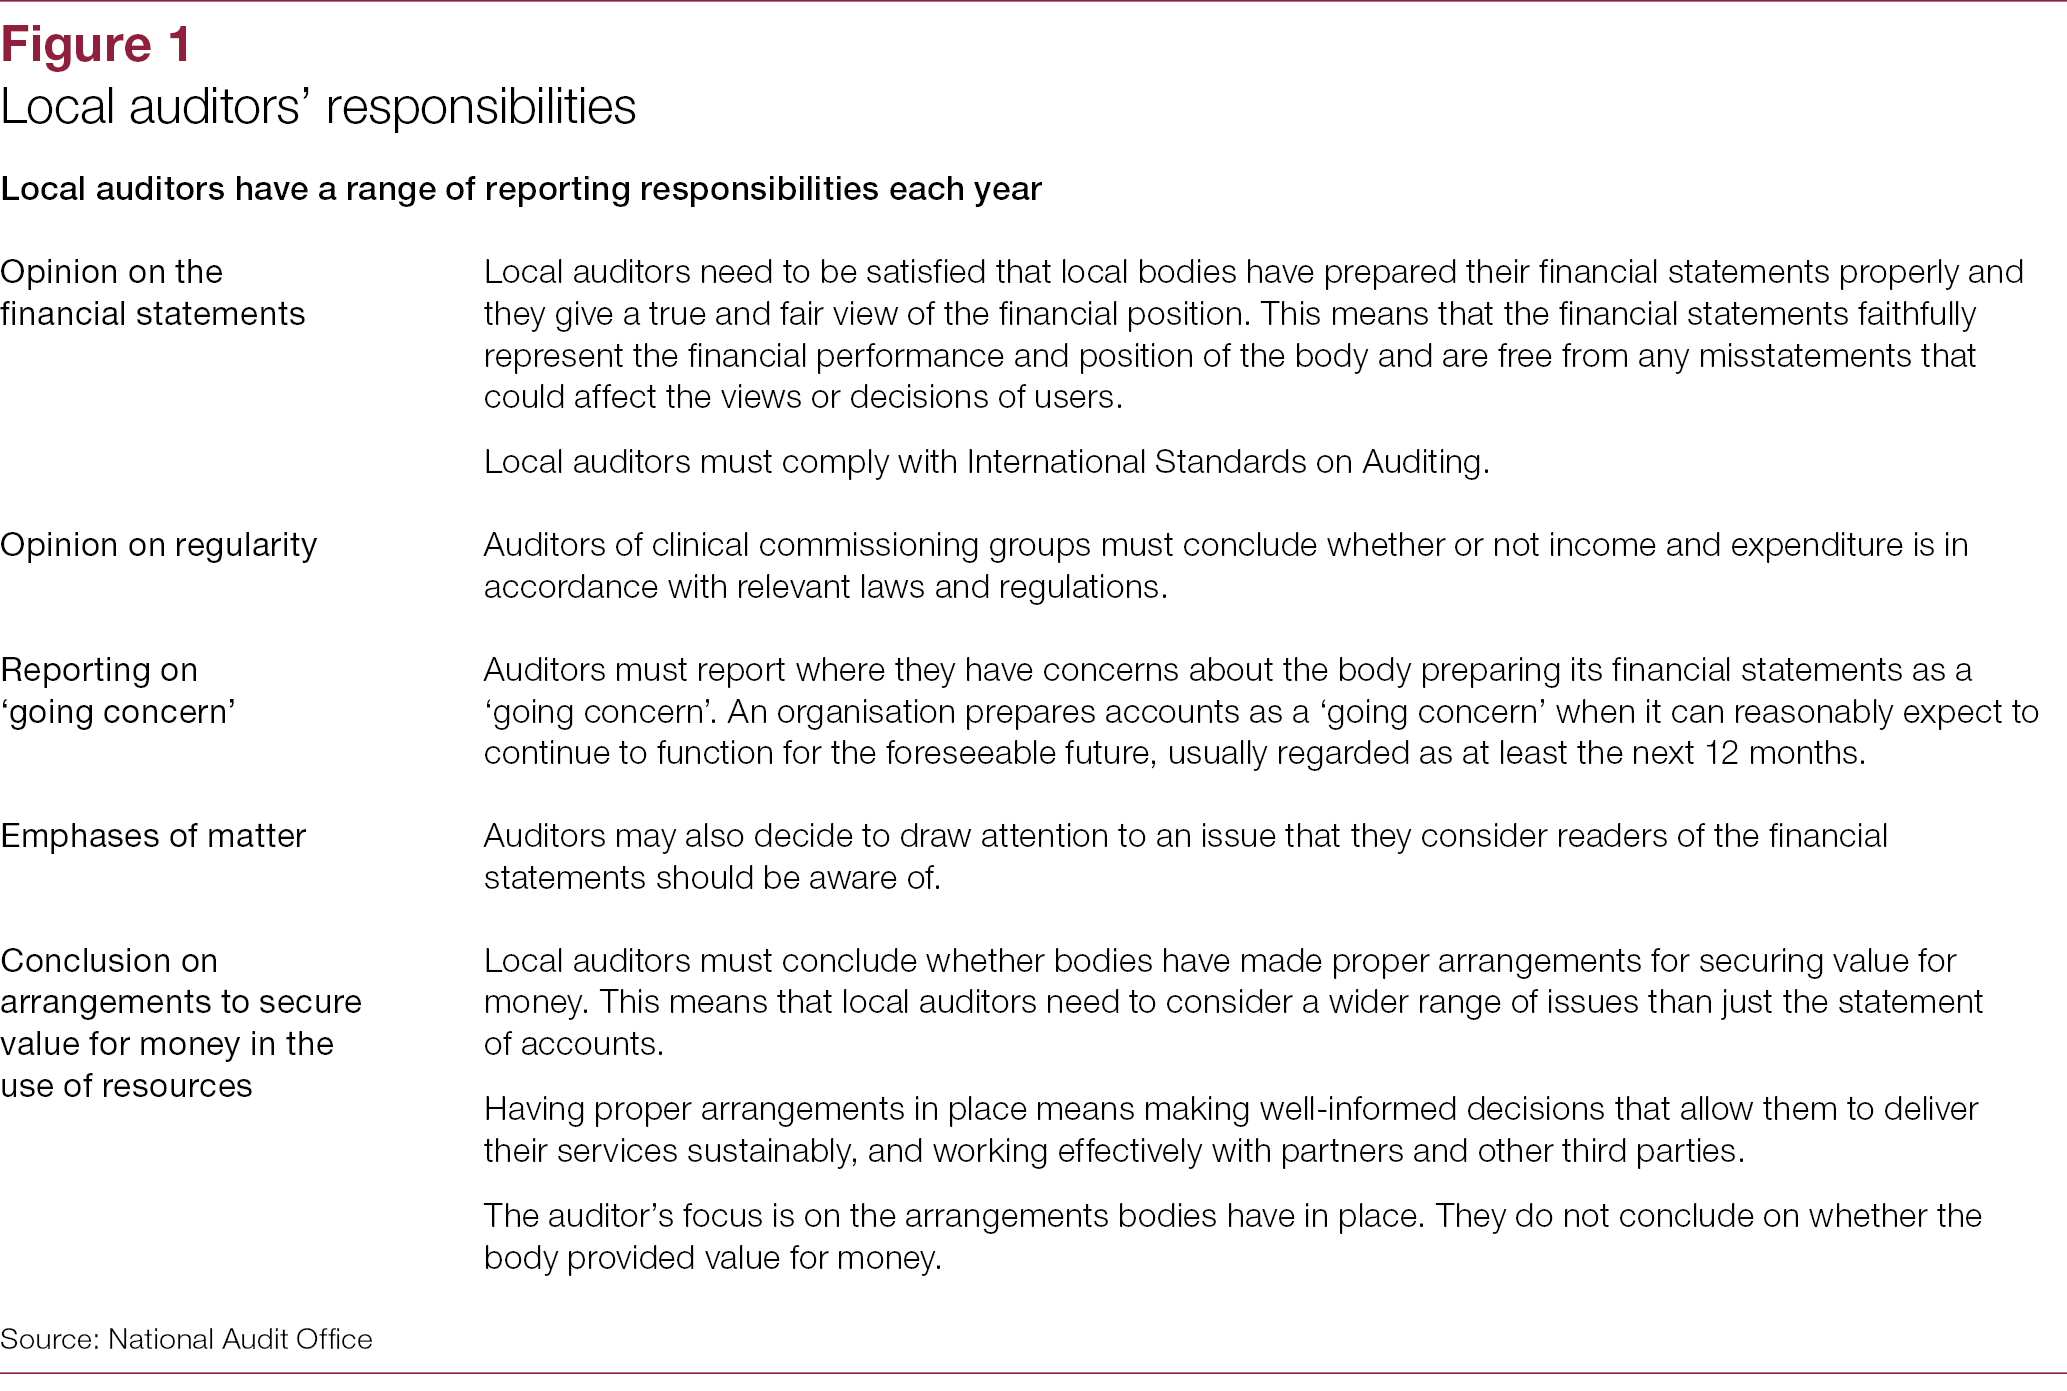 Local auditor reporting in England 2018 - National Audit